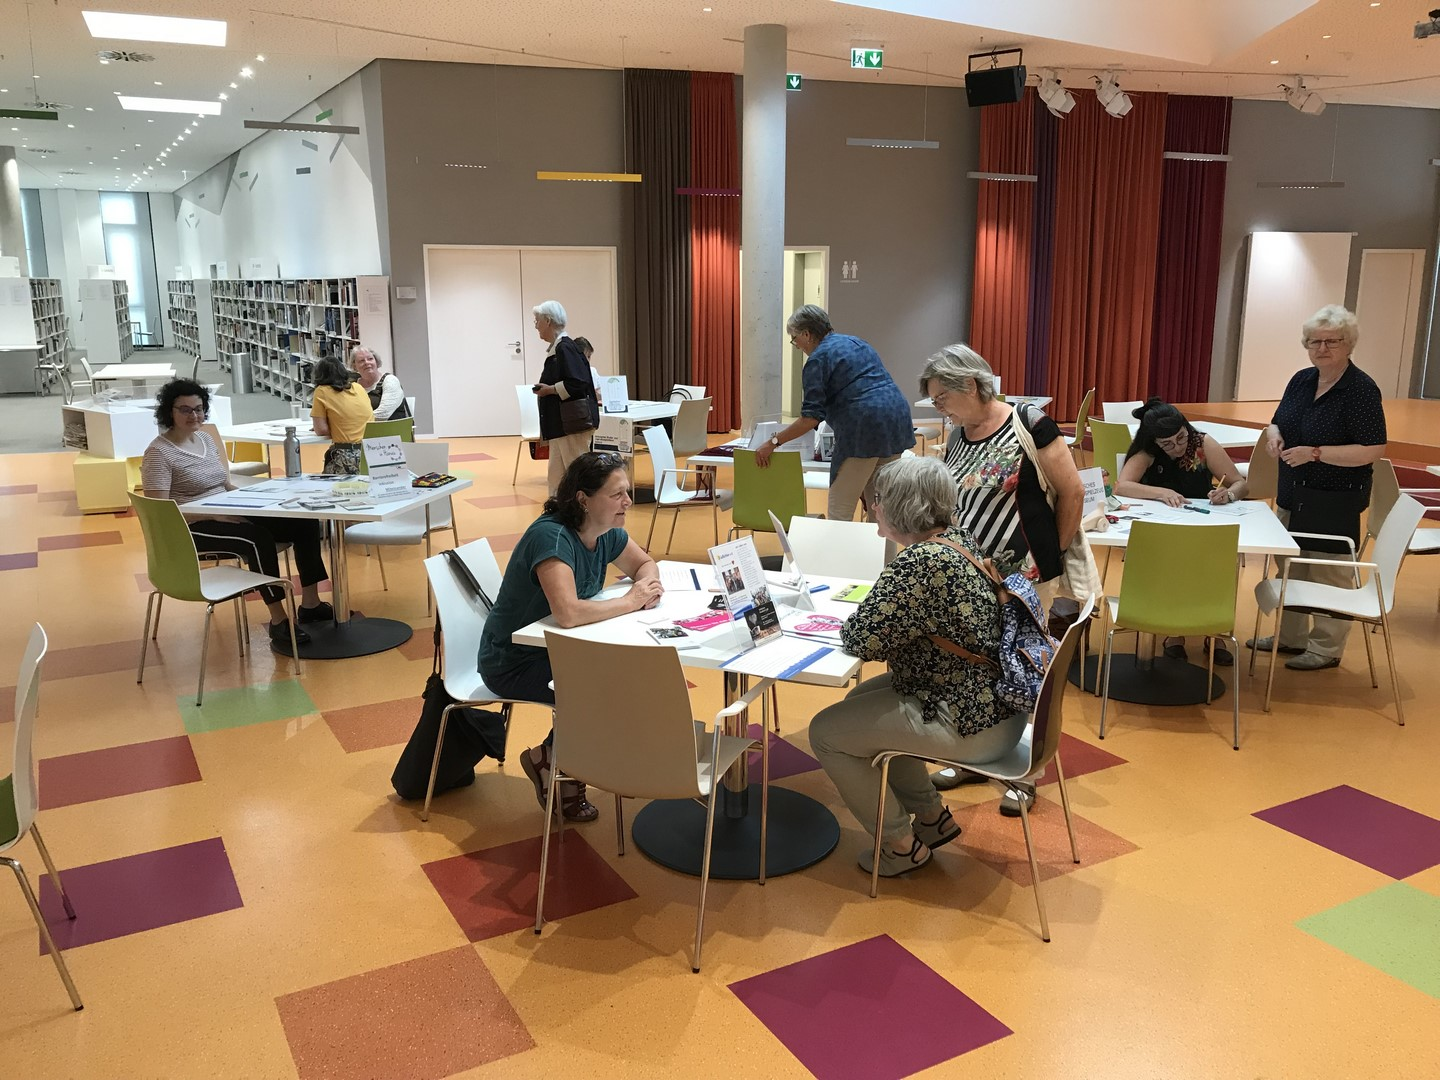 Speed-Dating im Kulturforum Hanau. Cettina hat